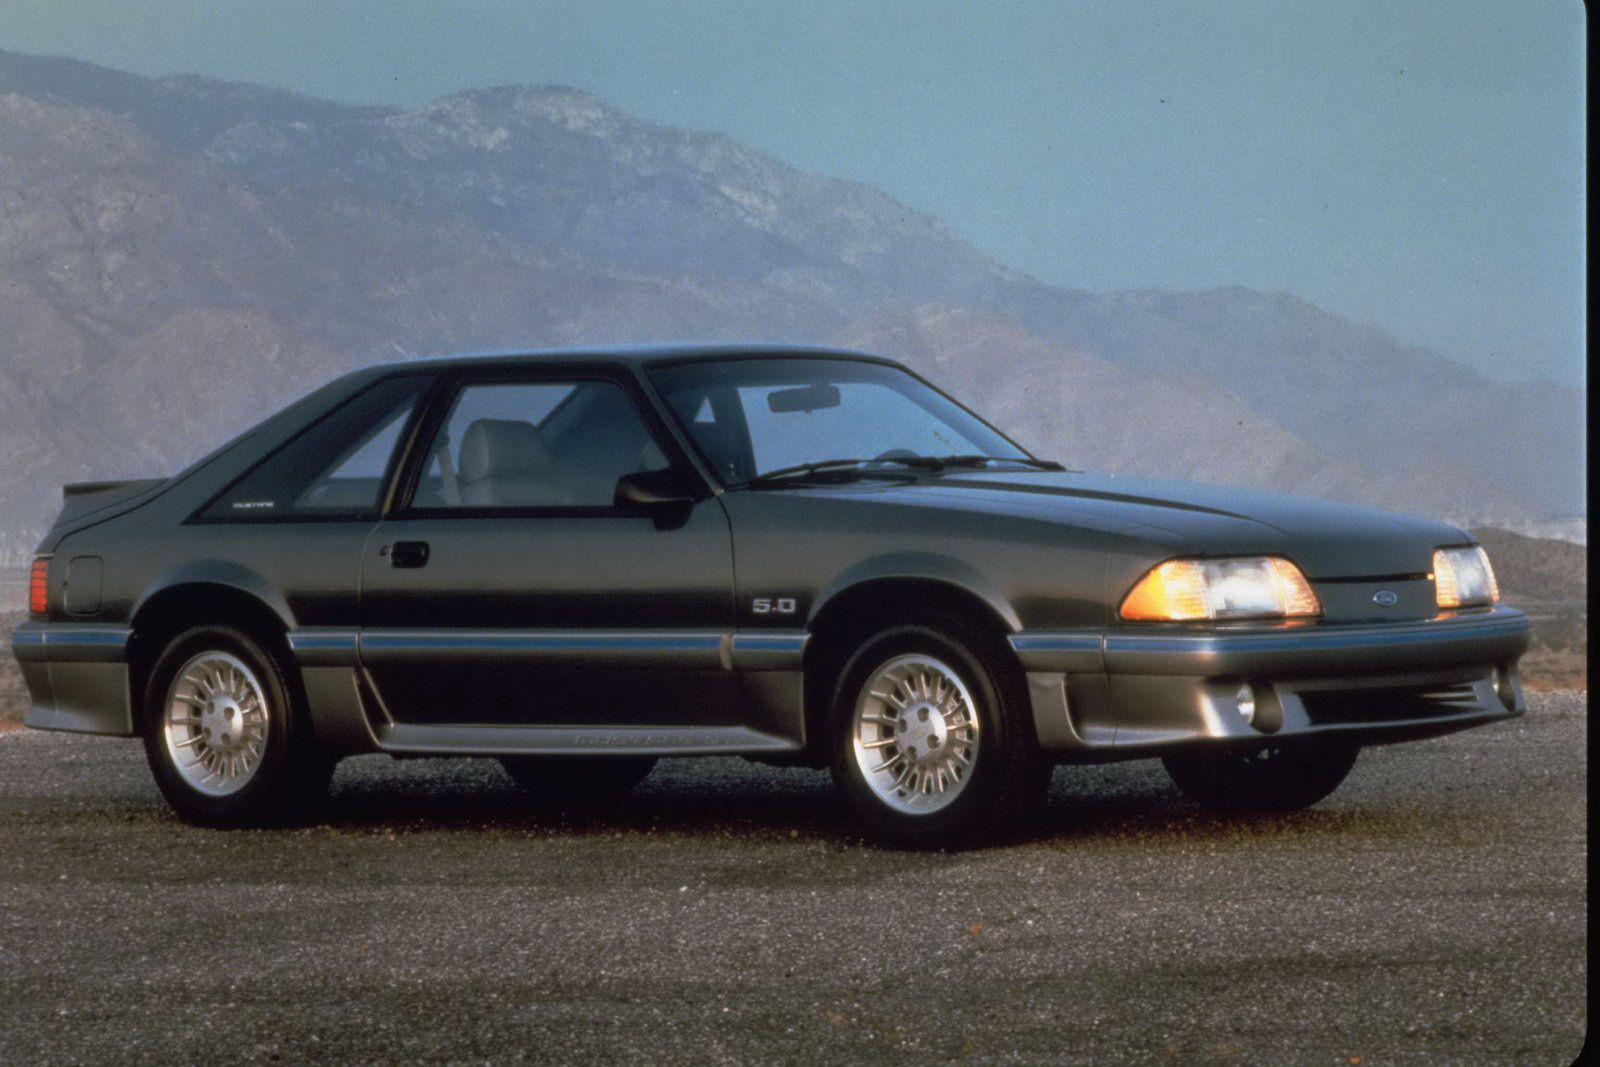 Late 80s mustang